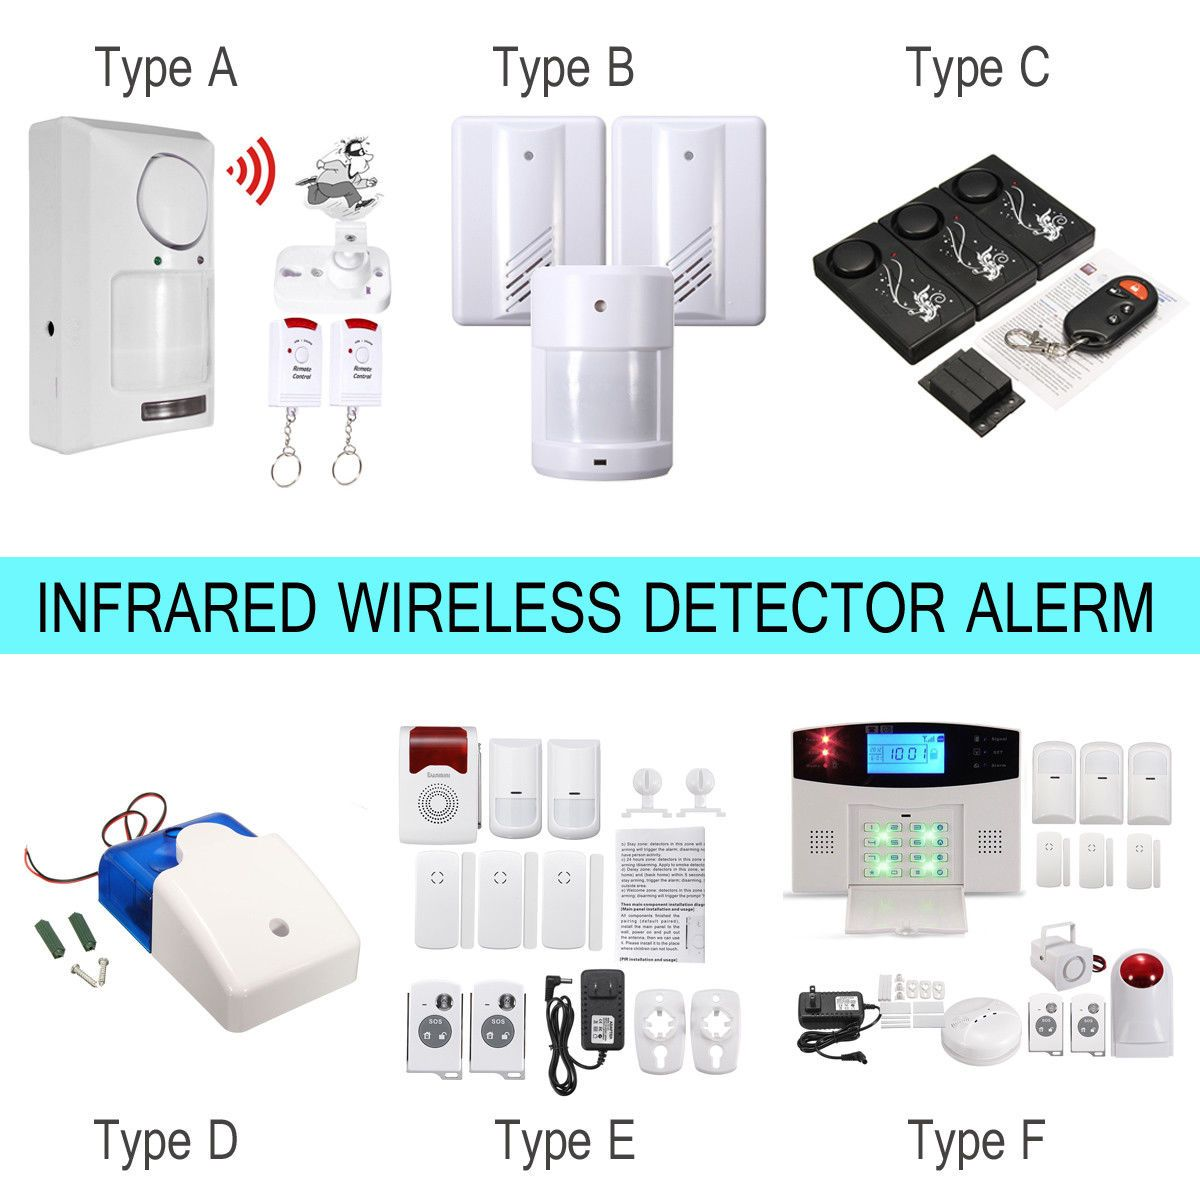 553 Aud Wireless Ir Motion Sensor Infrared Detector Burglar Intruder Alarm Remote Home Security Ebay